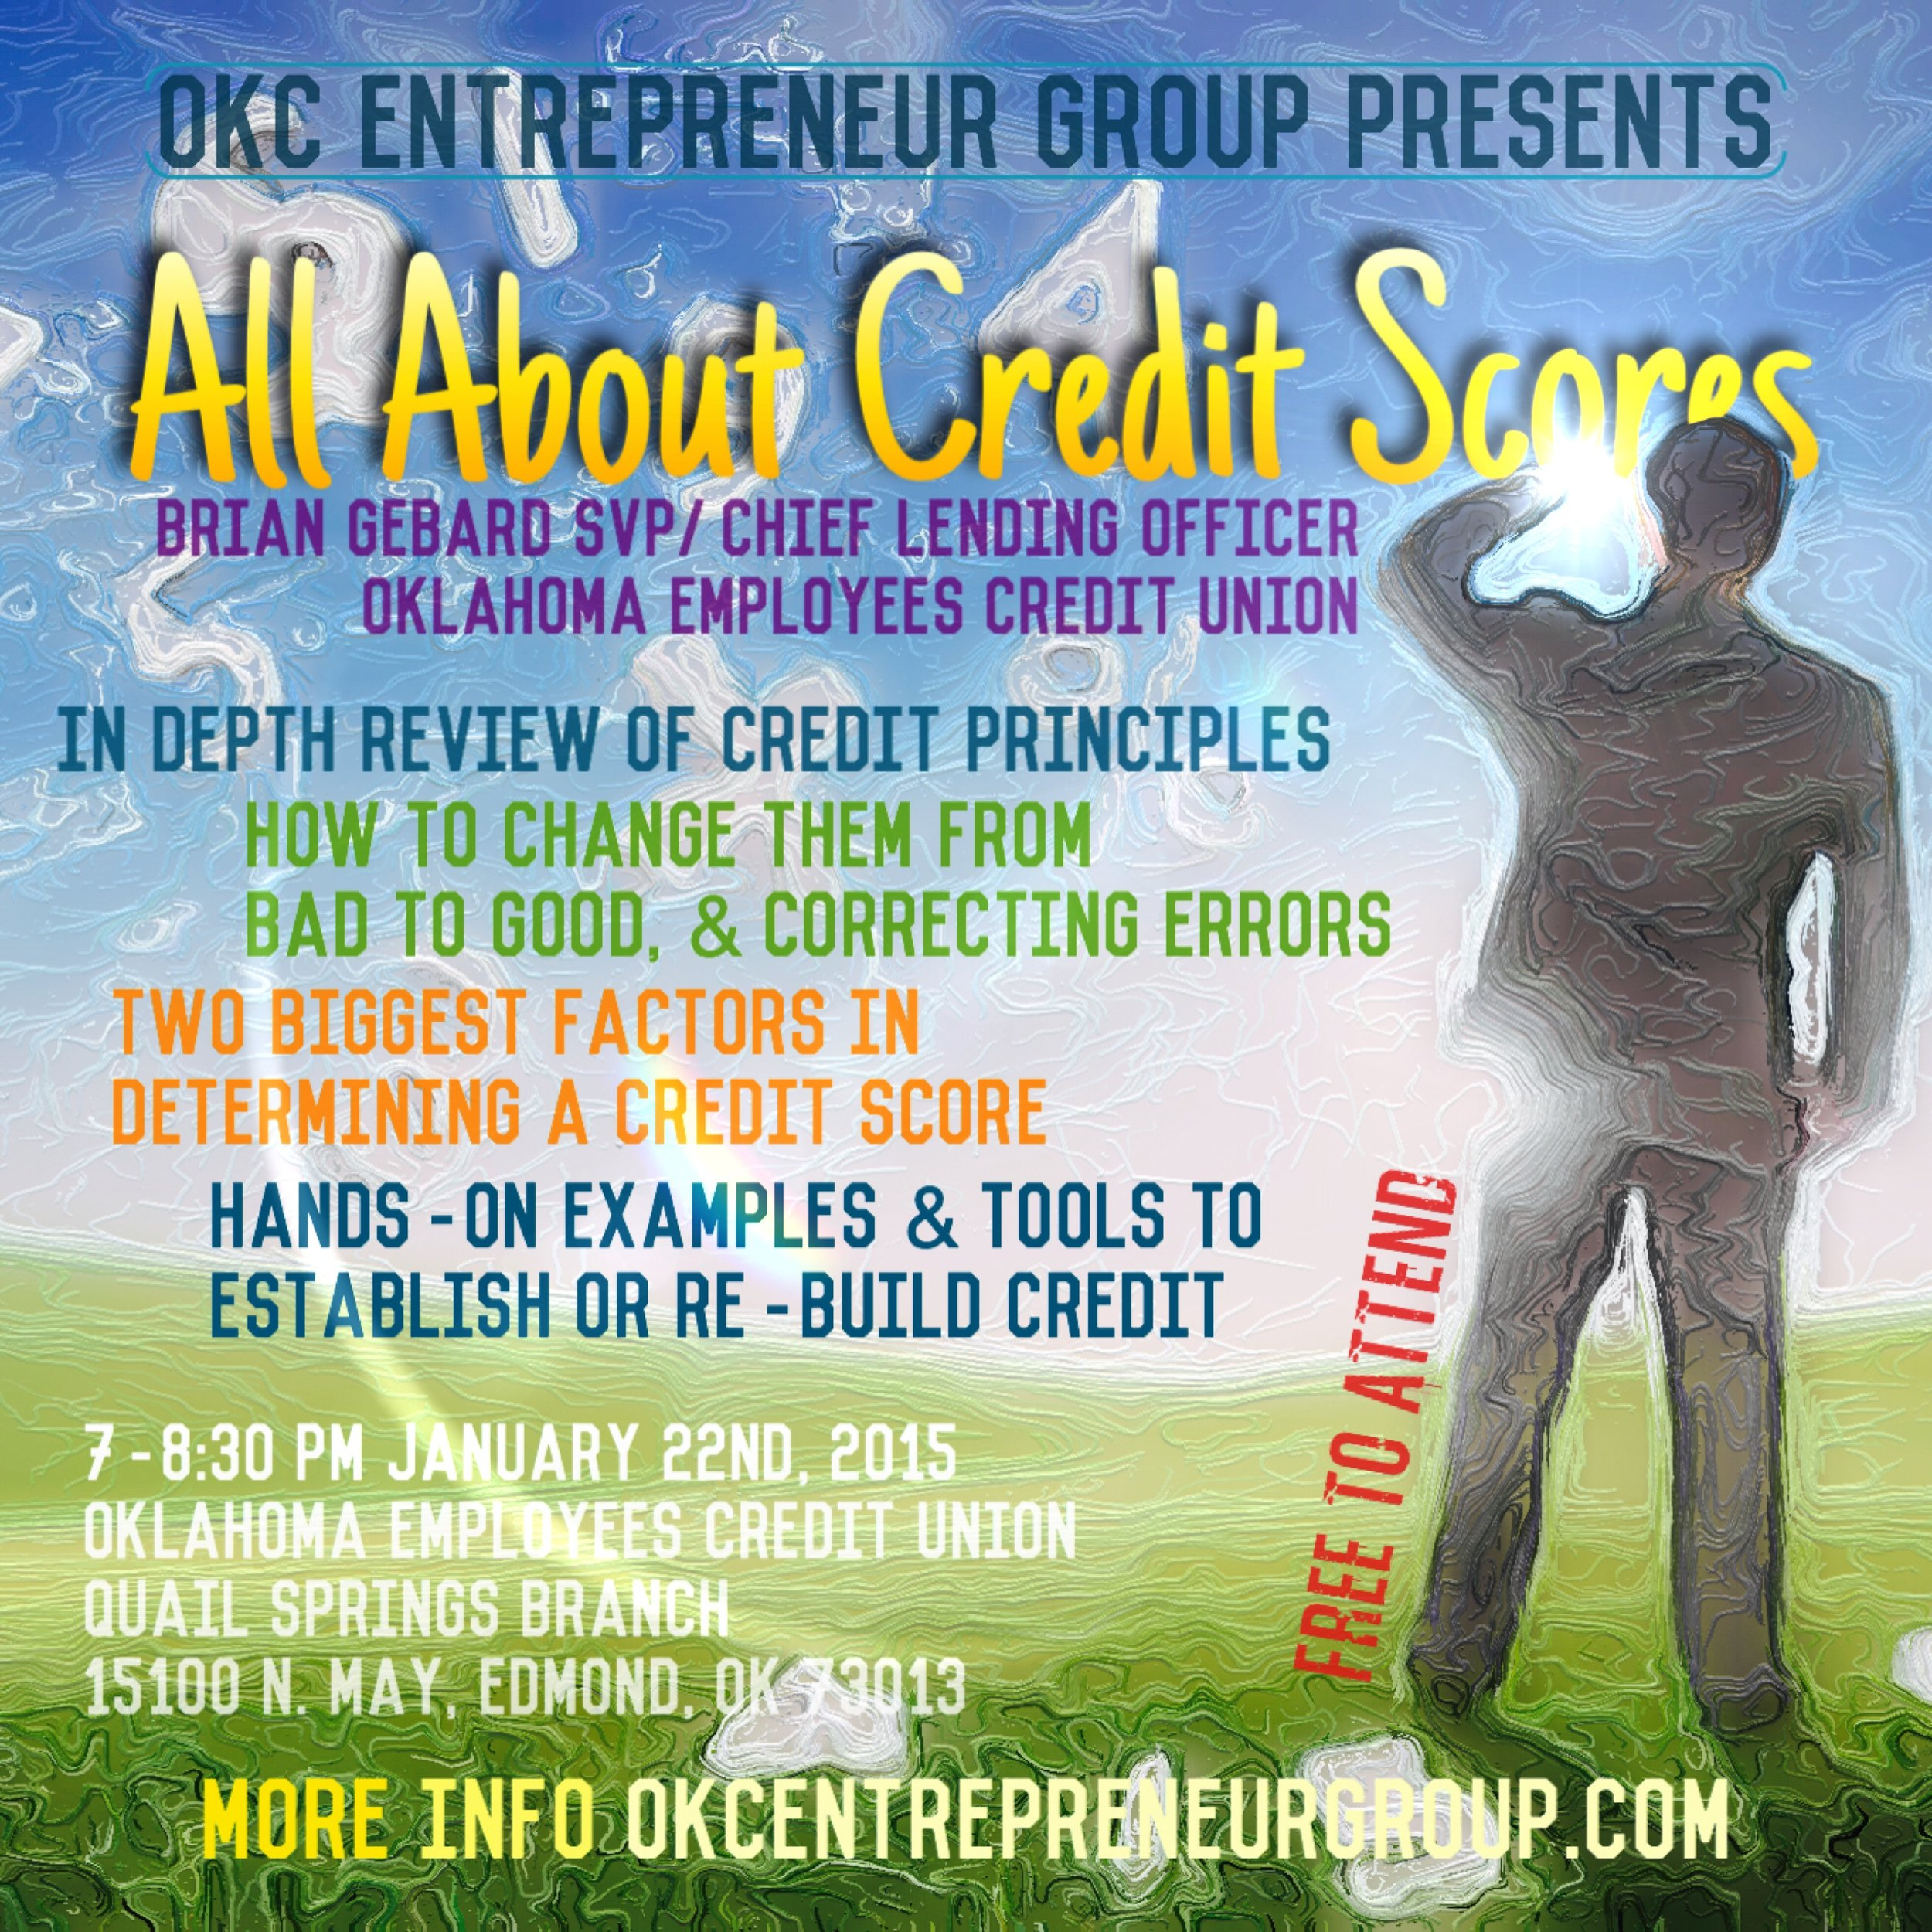 OKCENTREPRENEURGROUP.com All About Credit Scores 3.jpg